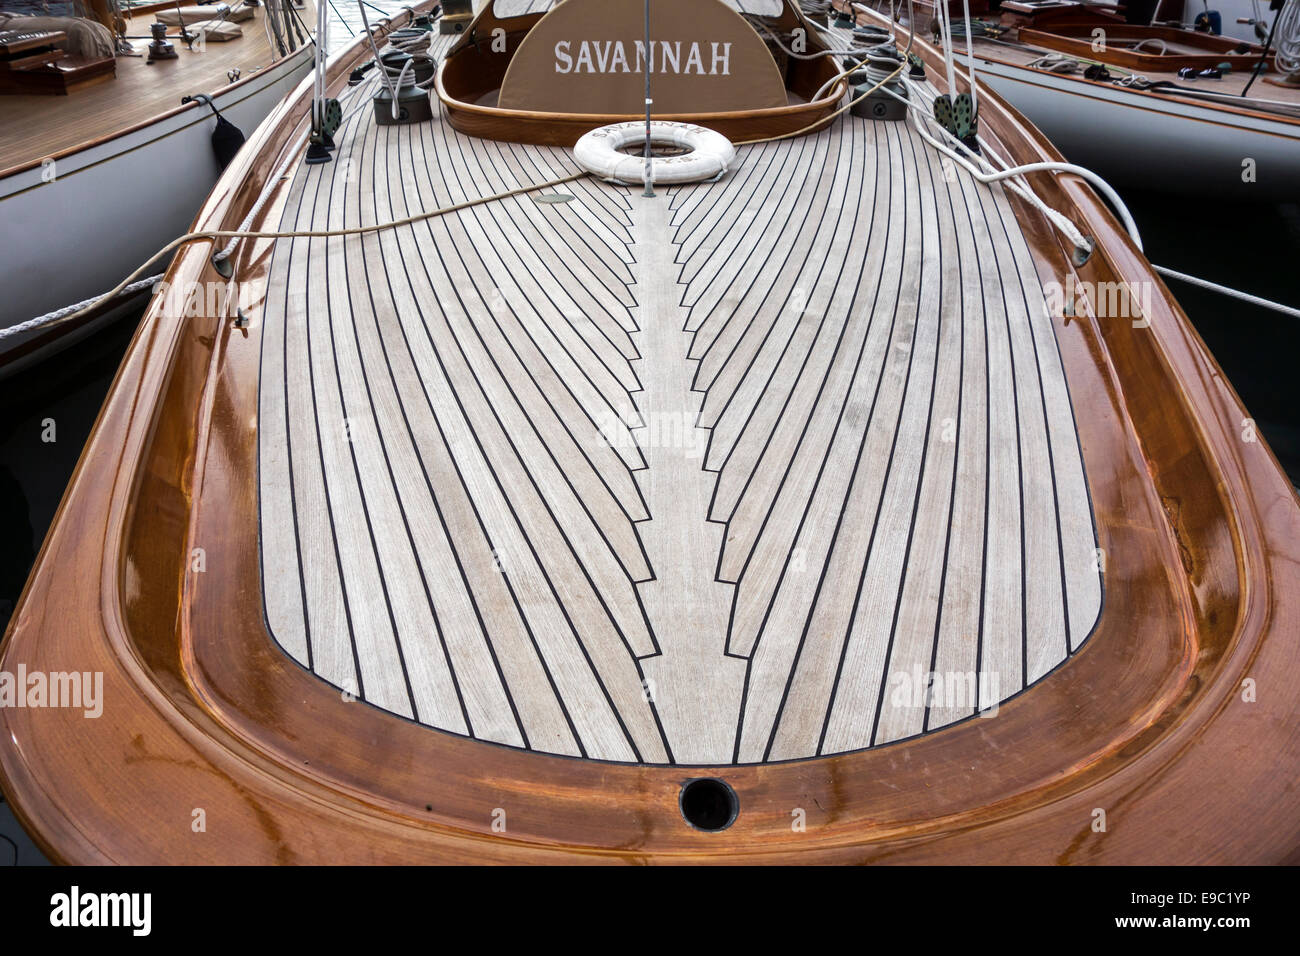 Wooden deck of sailing yacht in harbour - Stock Image